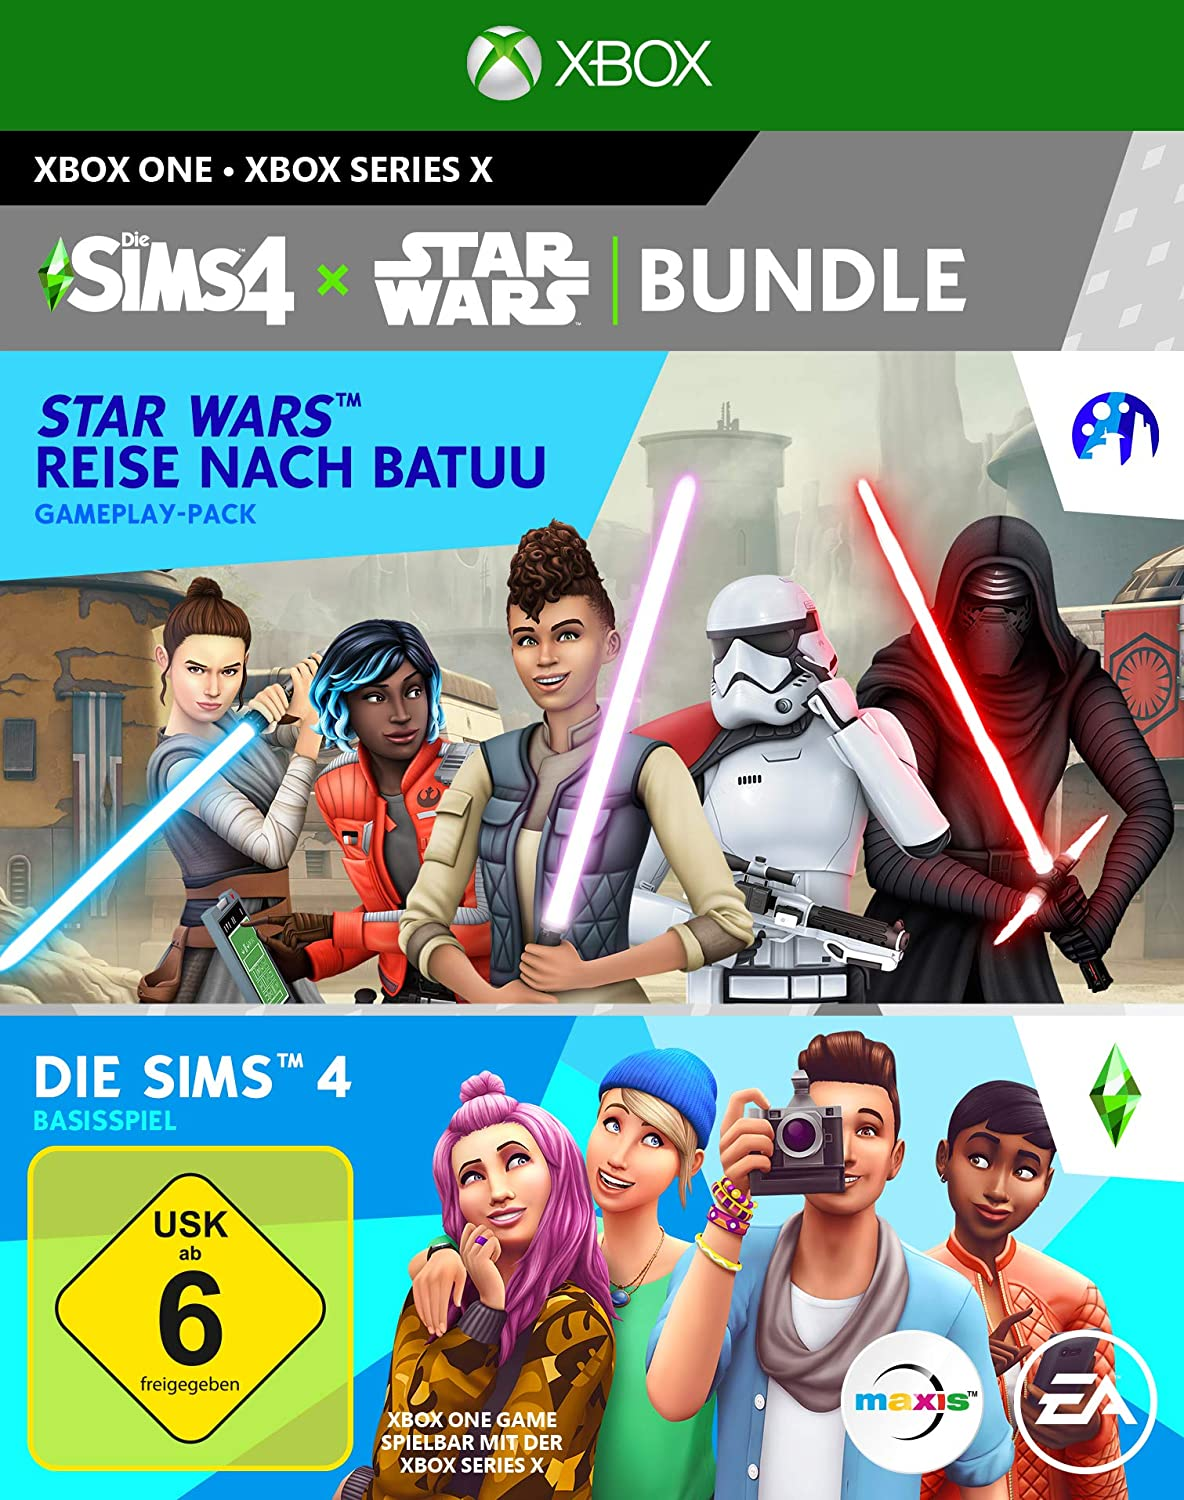 Die Sims 4 Star Wars Journey to Batuu Xbox Series X